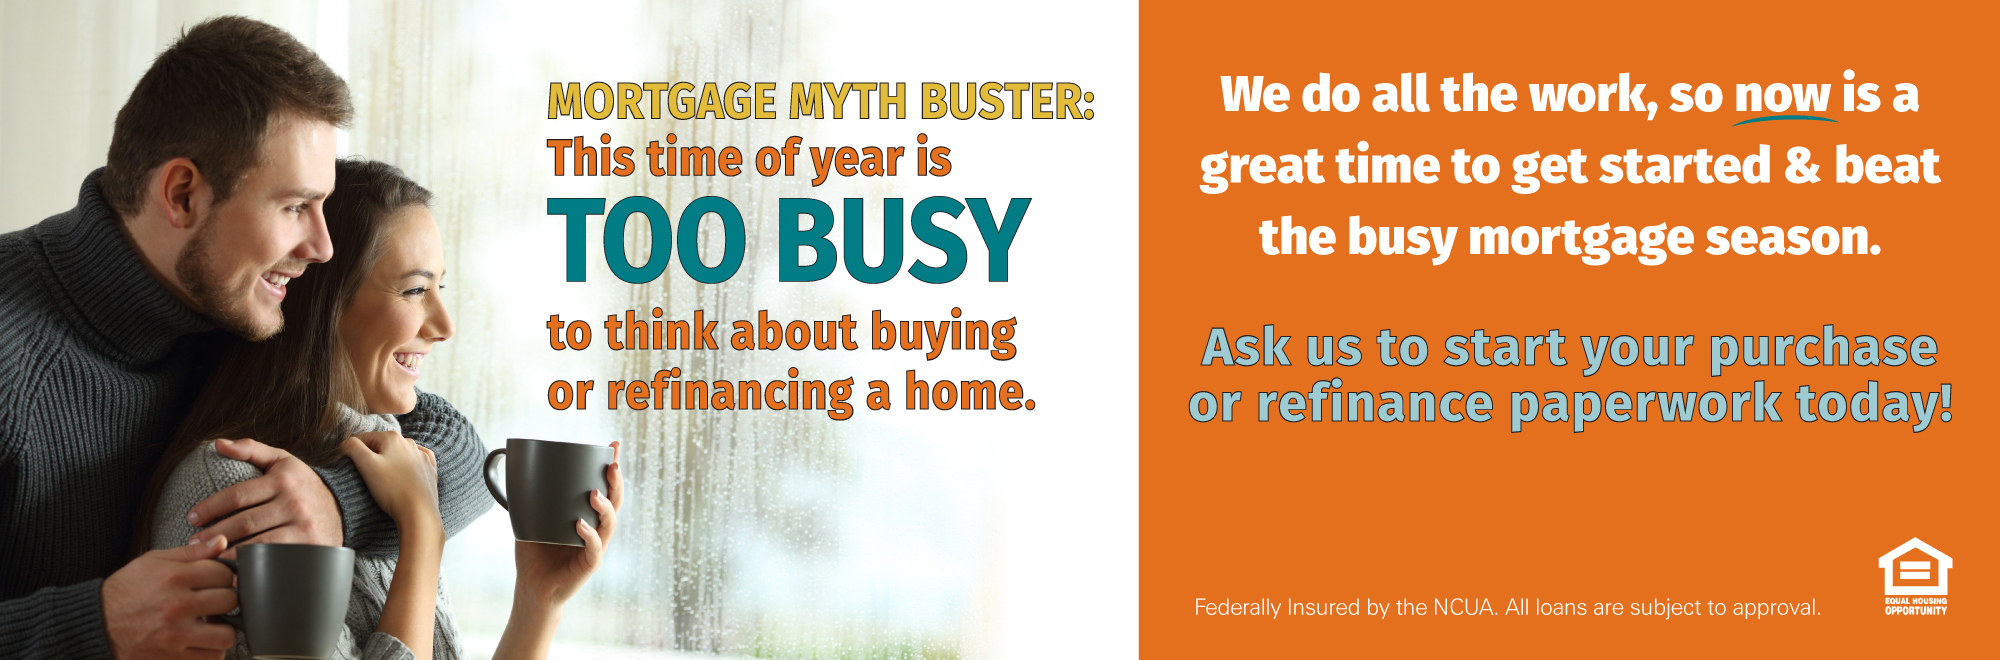 Now is a great time to get started & beat the busy mortgage season.Ask us to start your purchase or refinance paperwork today!